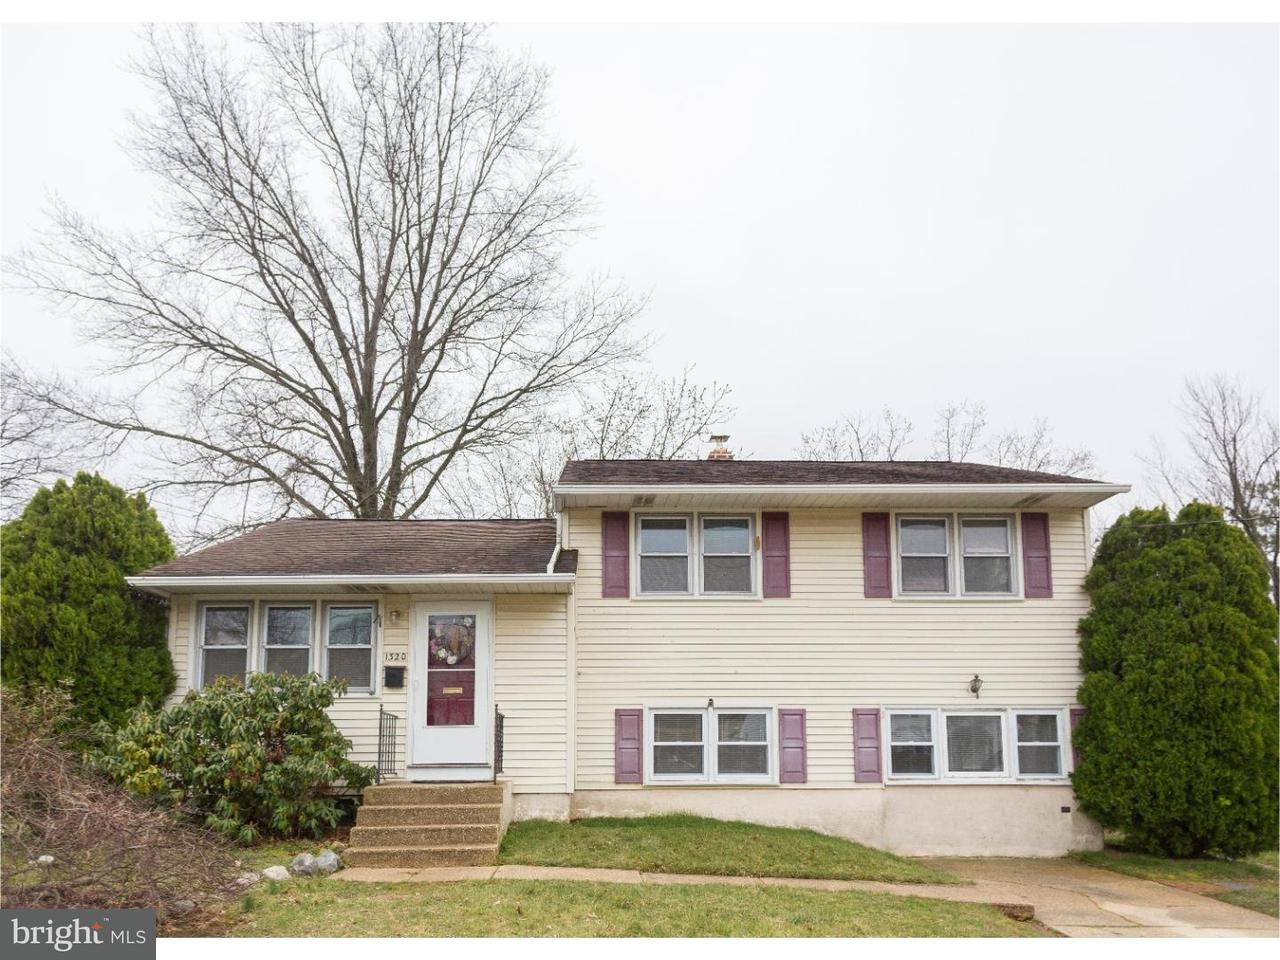 Single Family Home for Sale at 1320 KENWOOD Road Elsmere, Delaware 19805 United States